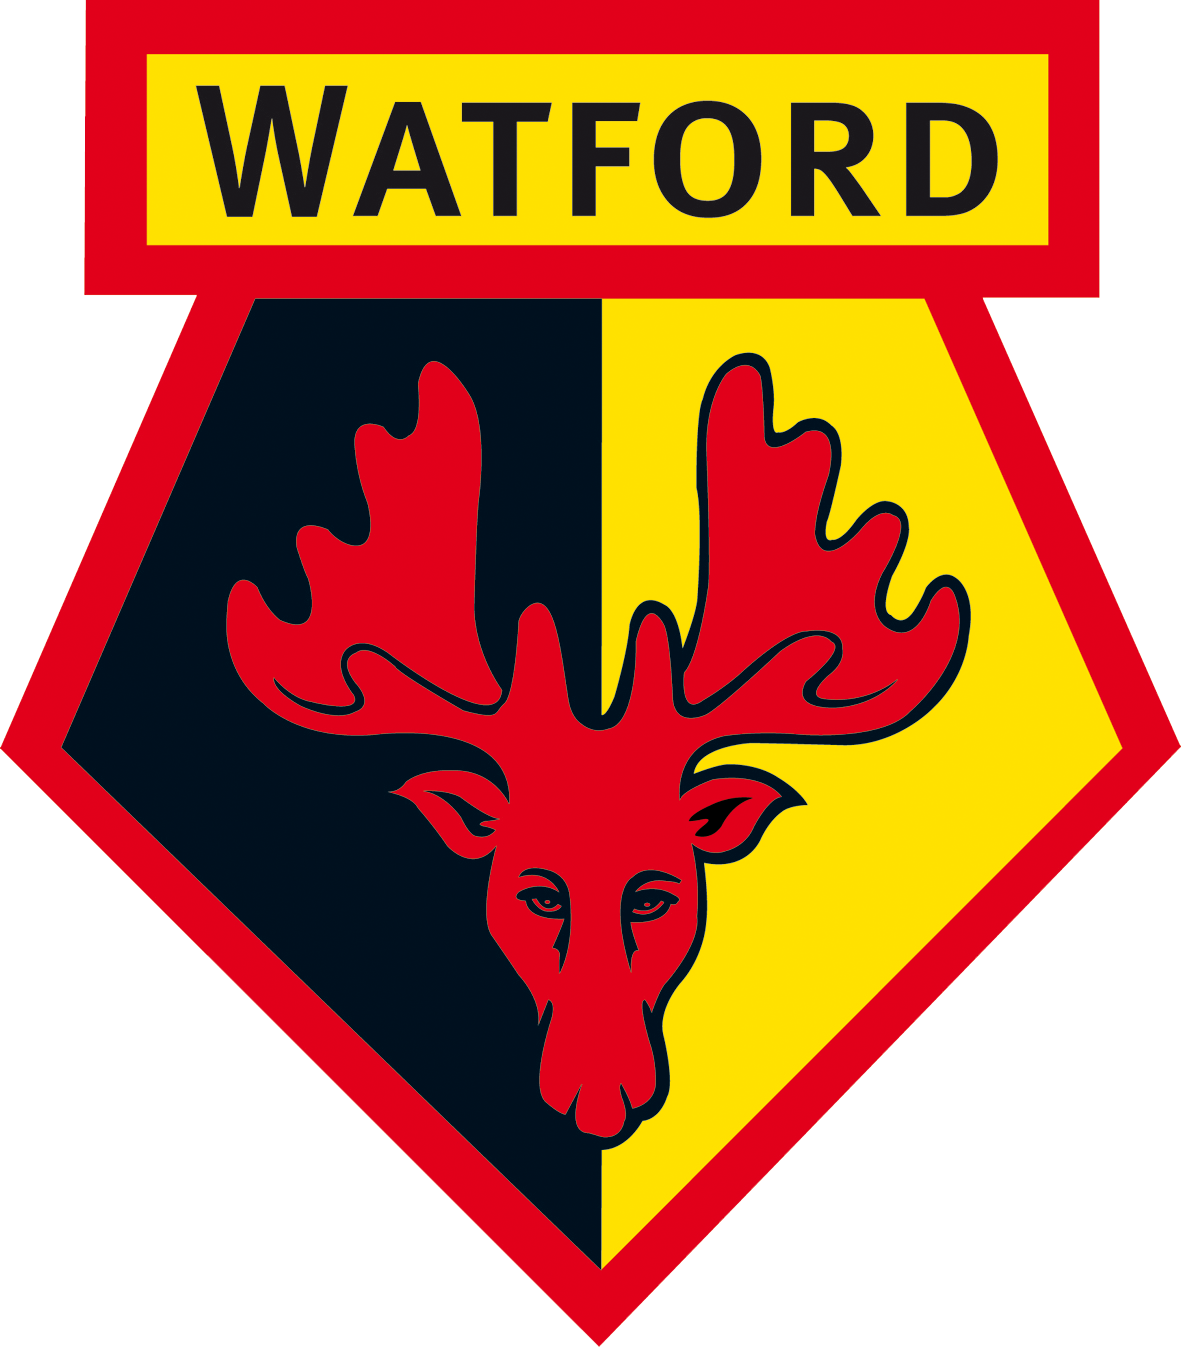 Stanmore College works with Watford Football Club